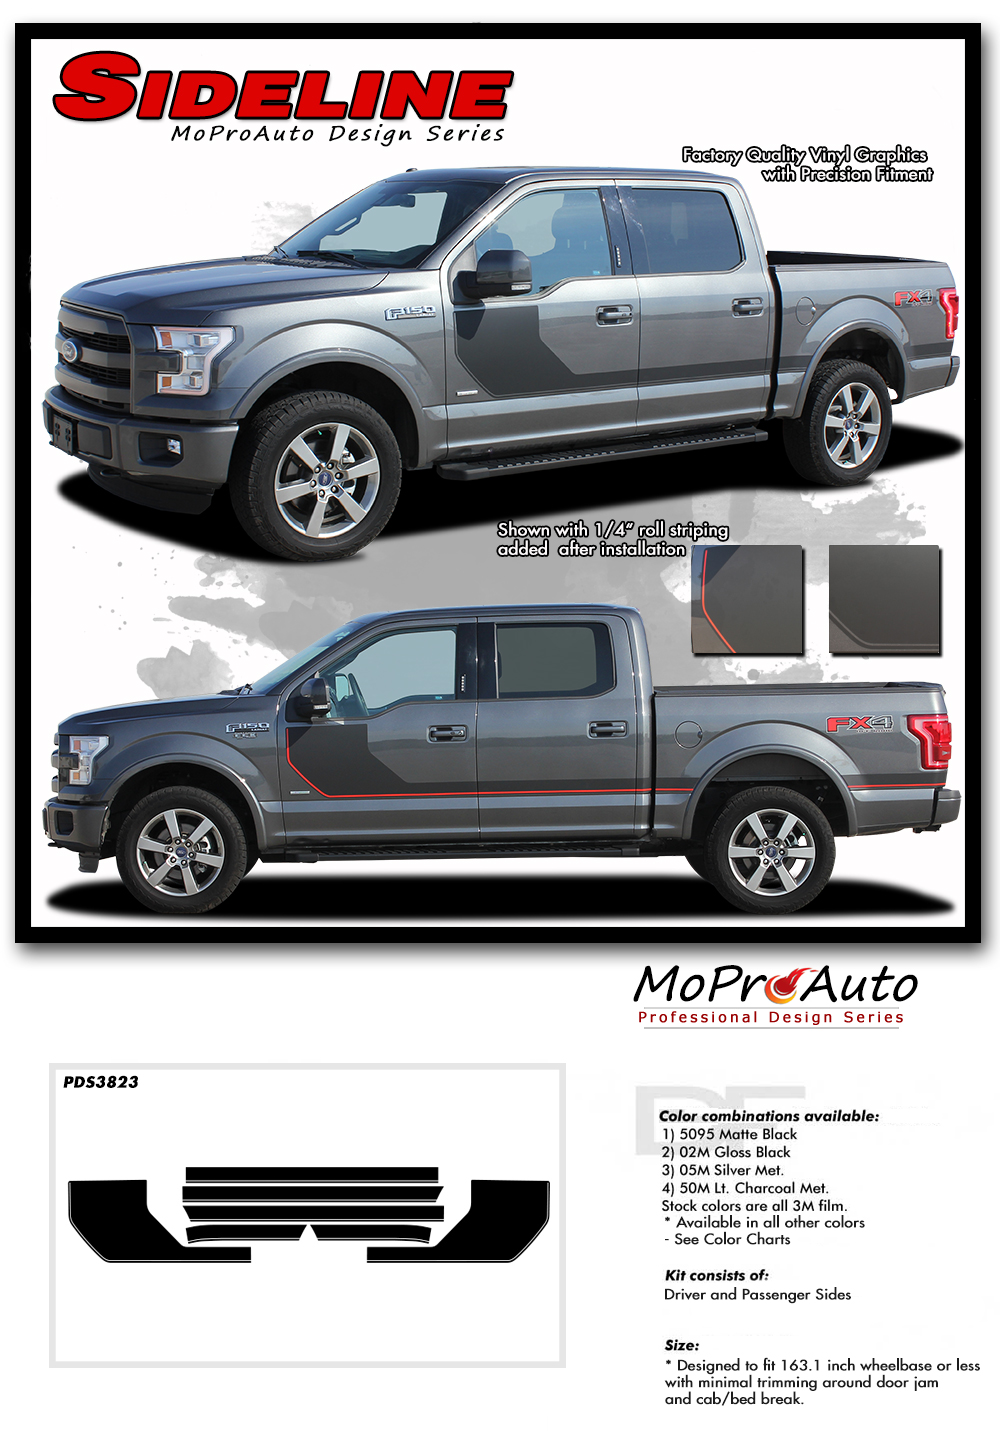 SIDELINE Special Edition 2015, 2016, 2017, 2018, 2019, 2020 Ford F-Series F-150 Hockey Stick Appearance Package Vinyl Graphics and Decals Kit by MoProAuto Pro Design Series